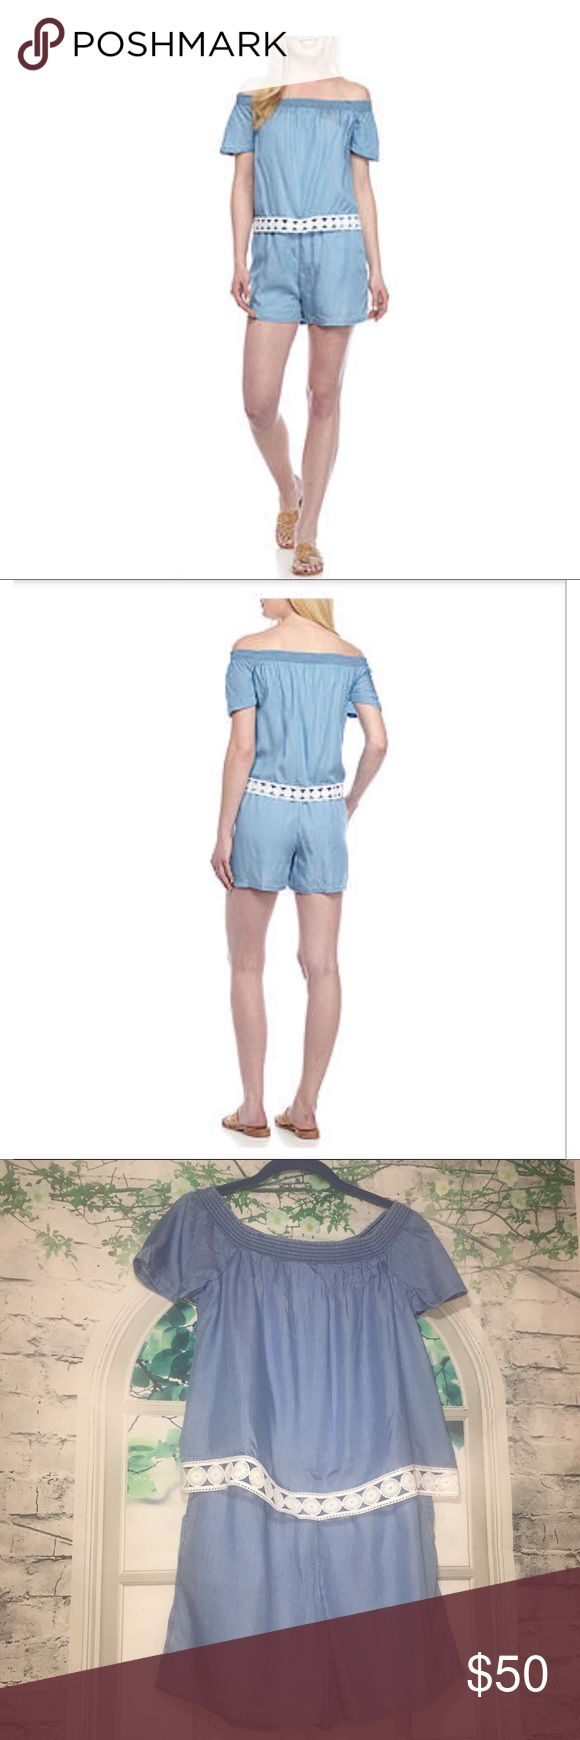 "Crown & Ivy Chic Short Sleeve Chambray Romper Crown & Ivy Short Sleeve Chambray Romper Off Shoulder Crochet Trim Small NWT $89.50 This features ultra chic crochet trim around the waist, an off the shoulder neck design & pockets for stashing small esssentials. Pullover Off the shoulder neck Crochet trim design around the waist  Side pockets Fully lined 100% Tencel Lyocell Lining: 100% Cotton Machine washable Approximate flat lay measurements for size SMALL: Arm pit to arm pit: 16"" Waist: 14""…"